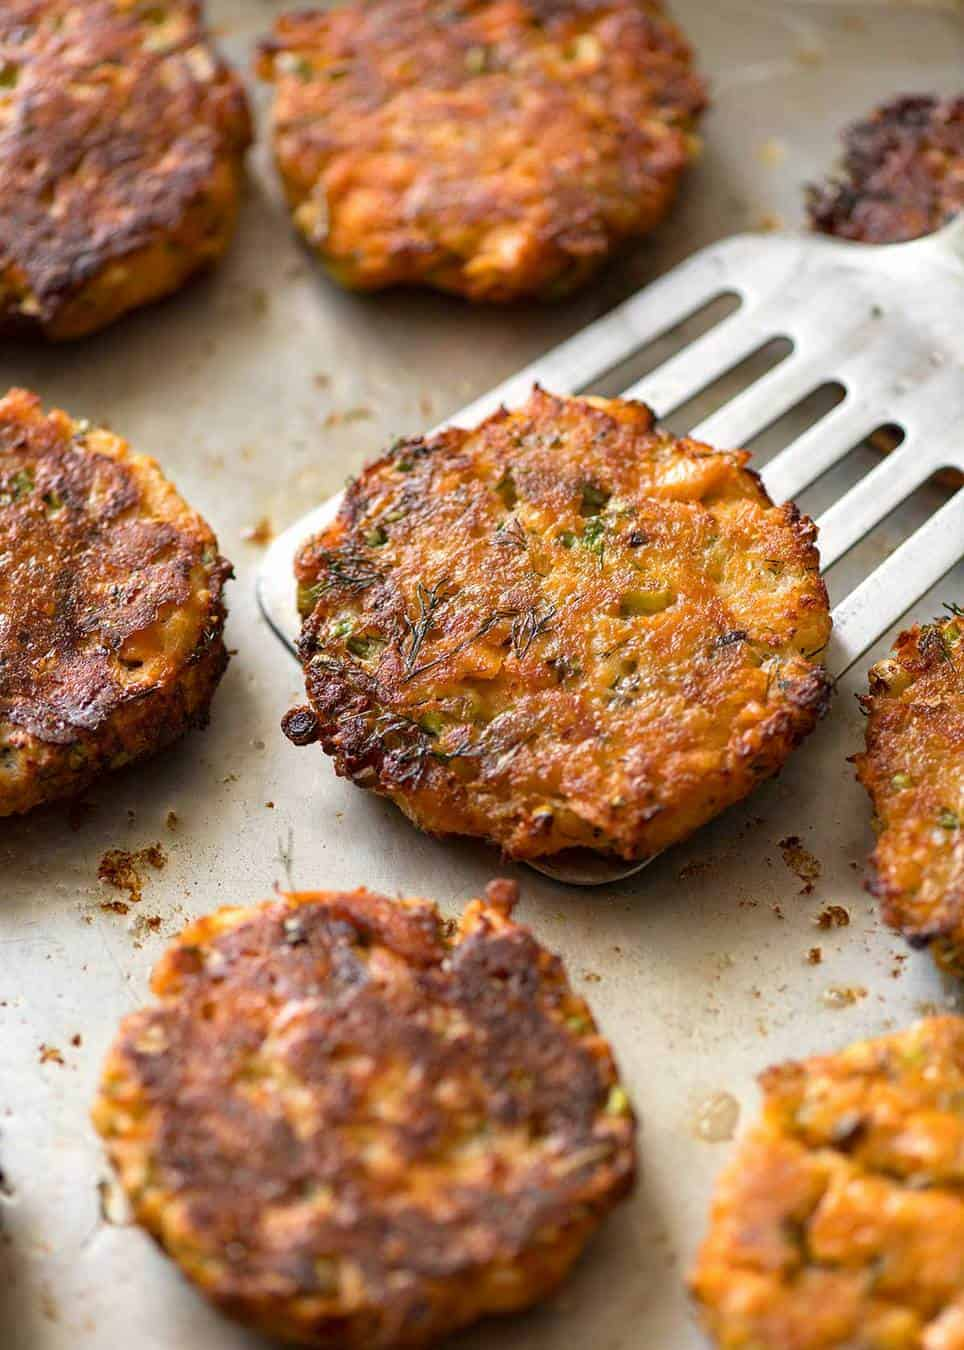 Tender insides studded with flakes of salmon, golden on the outside, these Salmon Patties are baked, not fried. Ultimate transformation of canned salmon - or use fresh! www.recipetineats.com